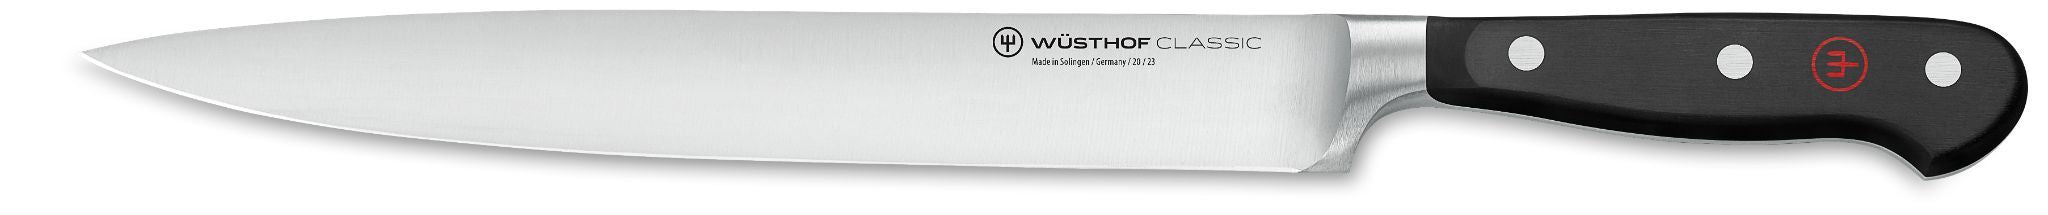 Wusthof Classic Carving Knife 23cm